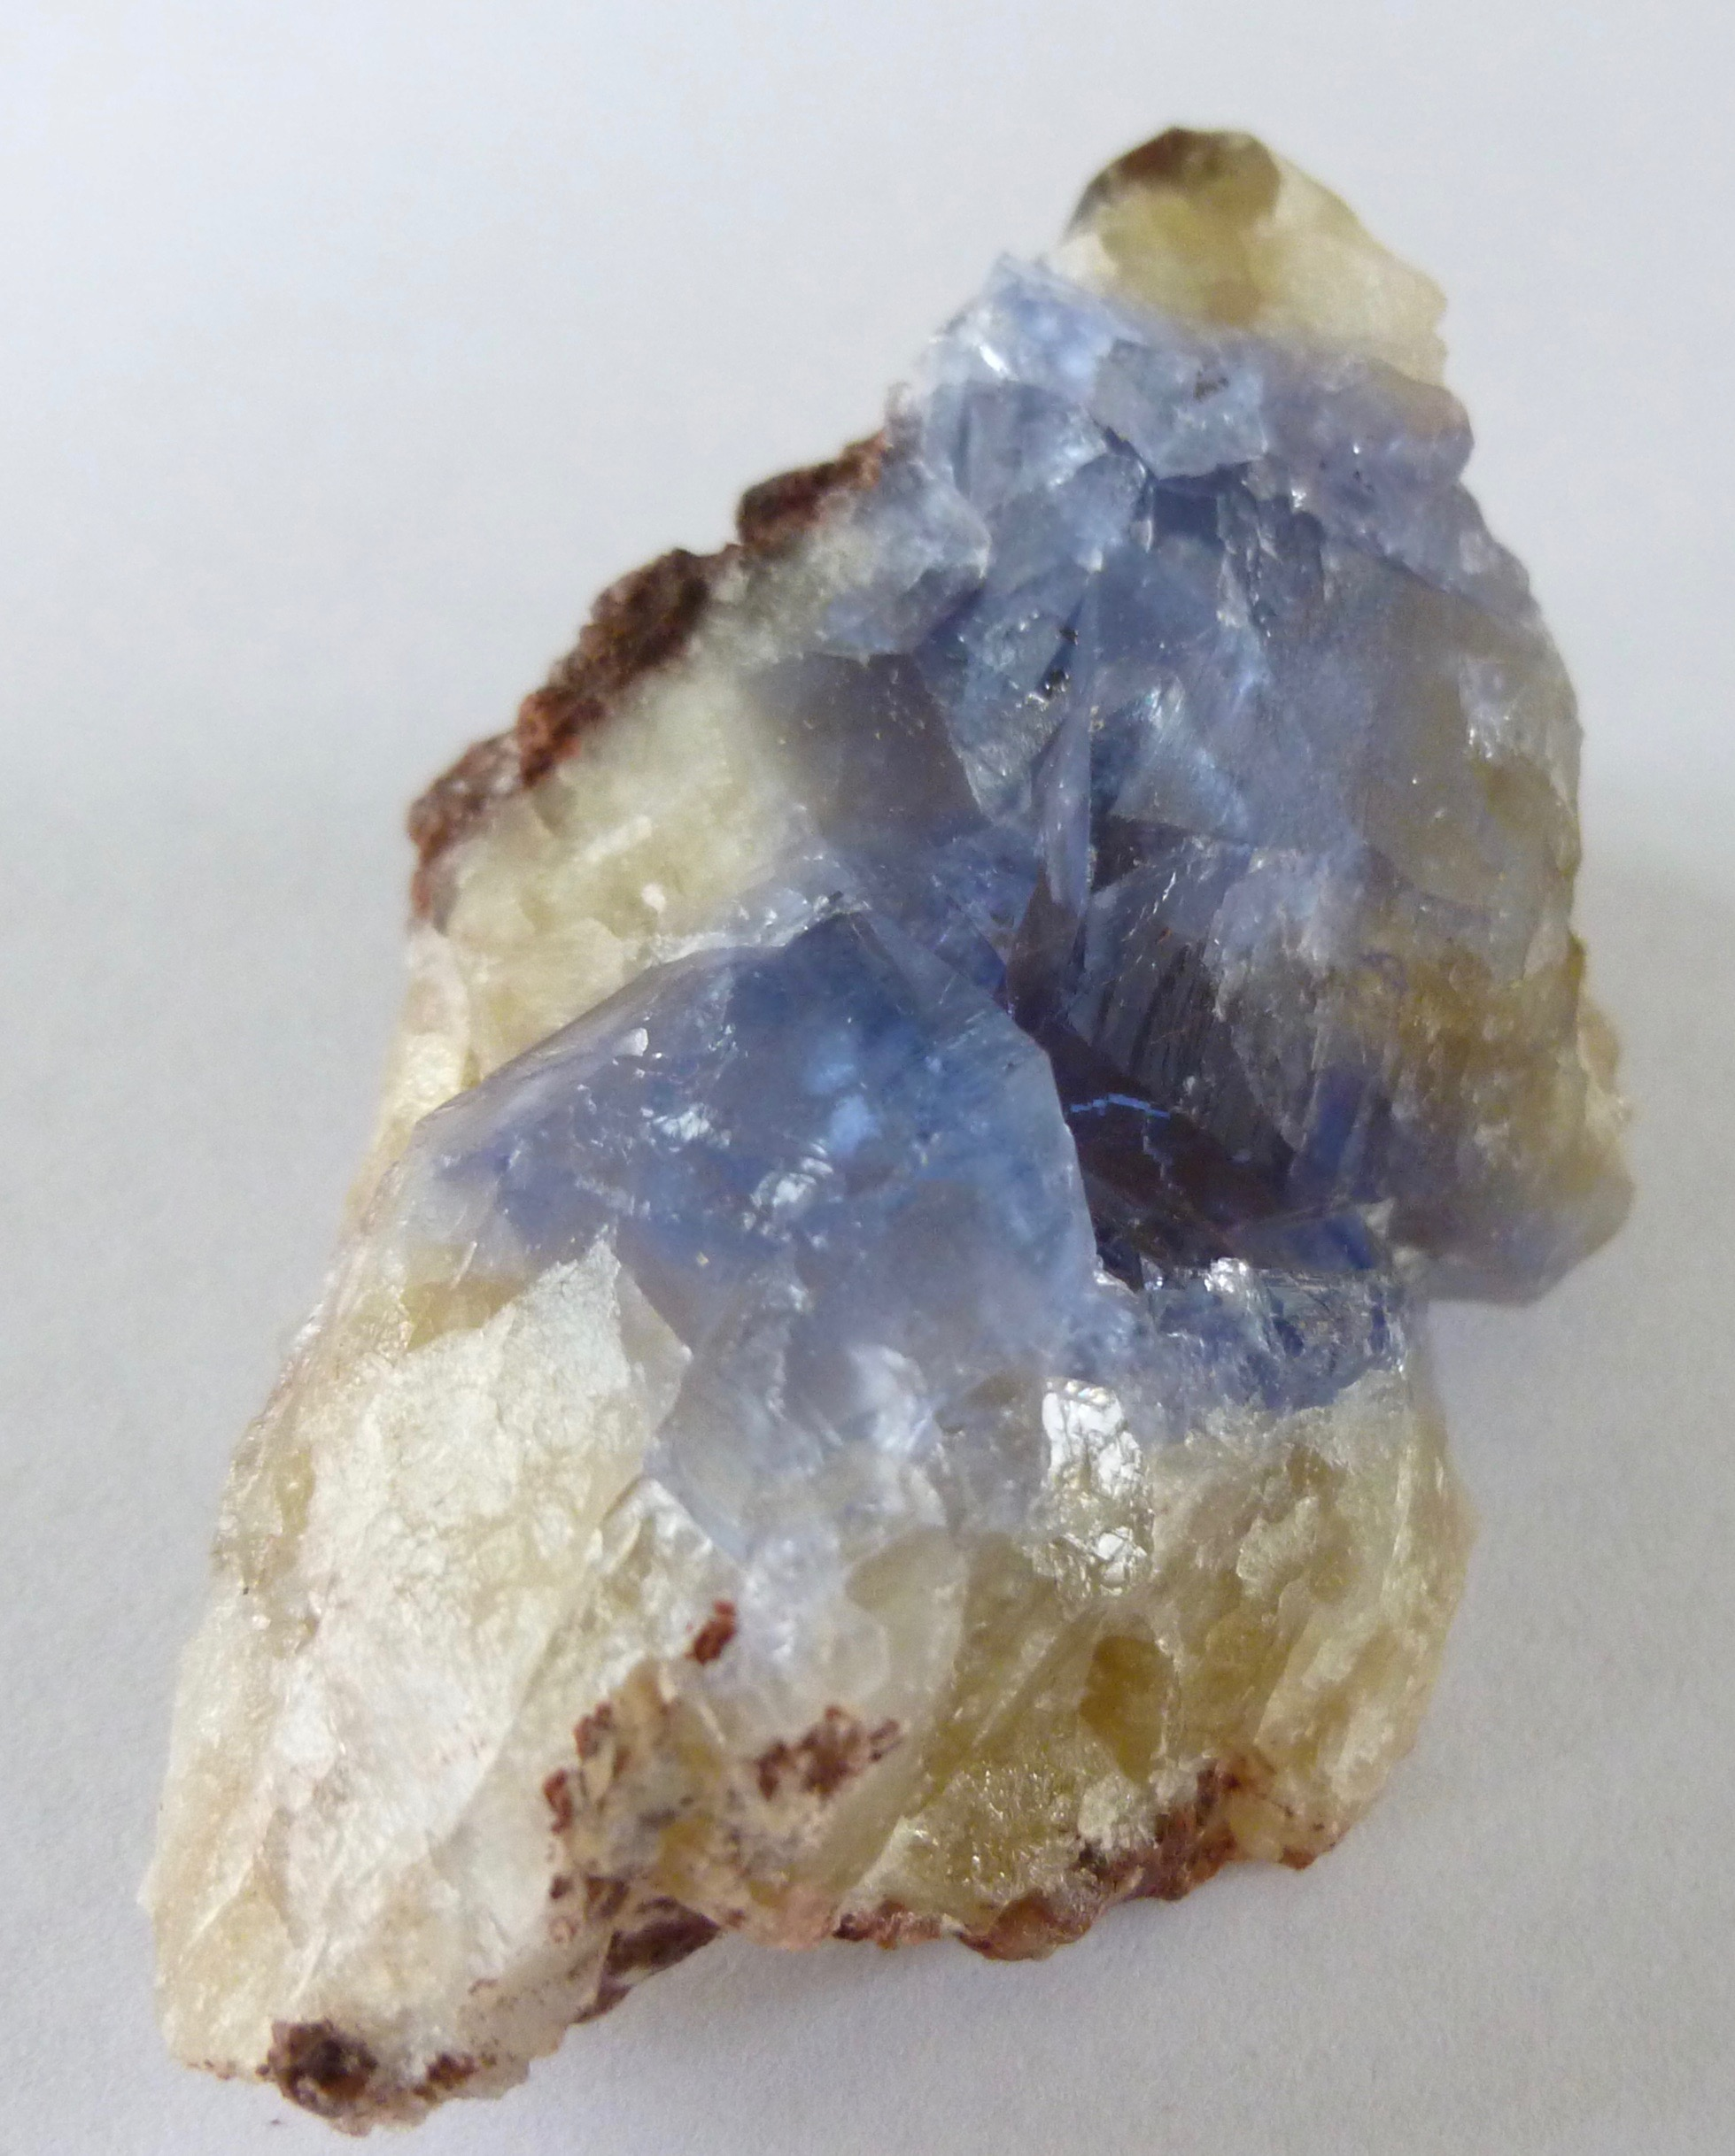 fluorite crystals gutterby pit cumbria